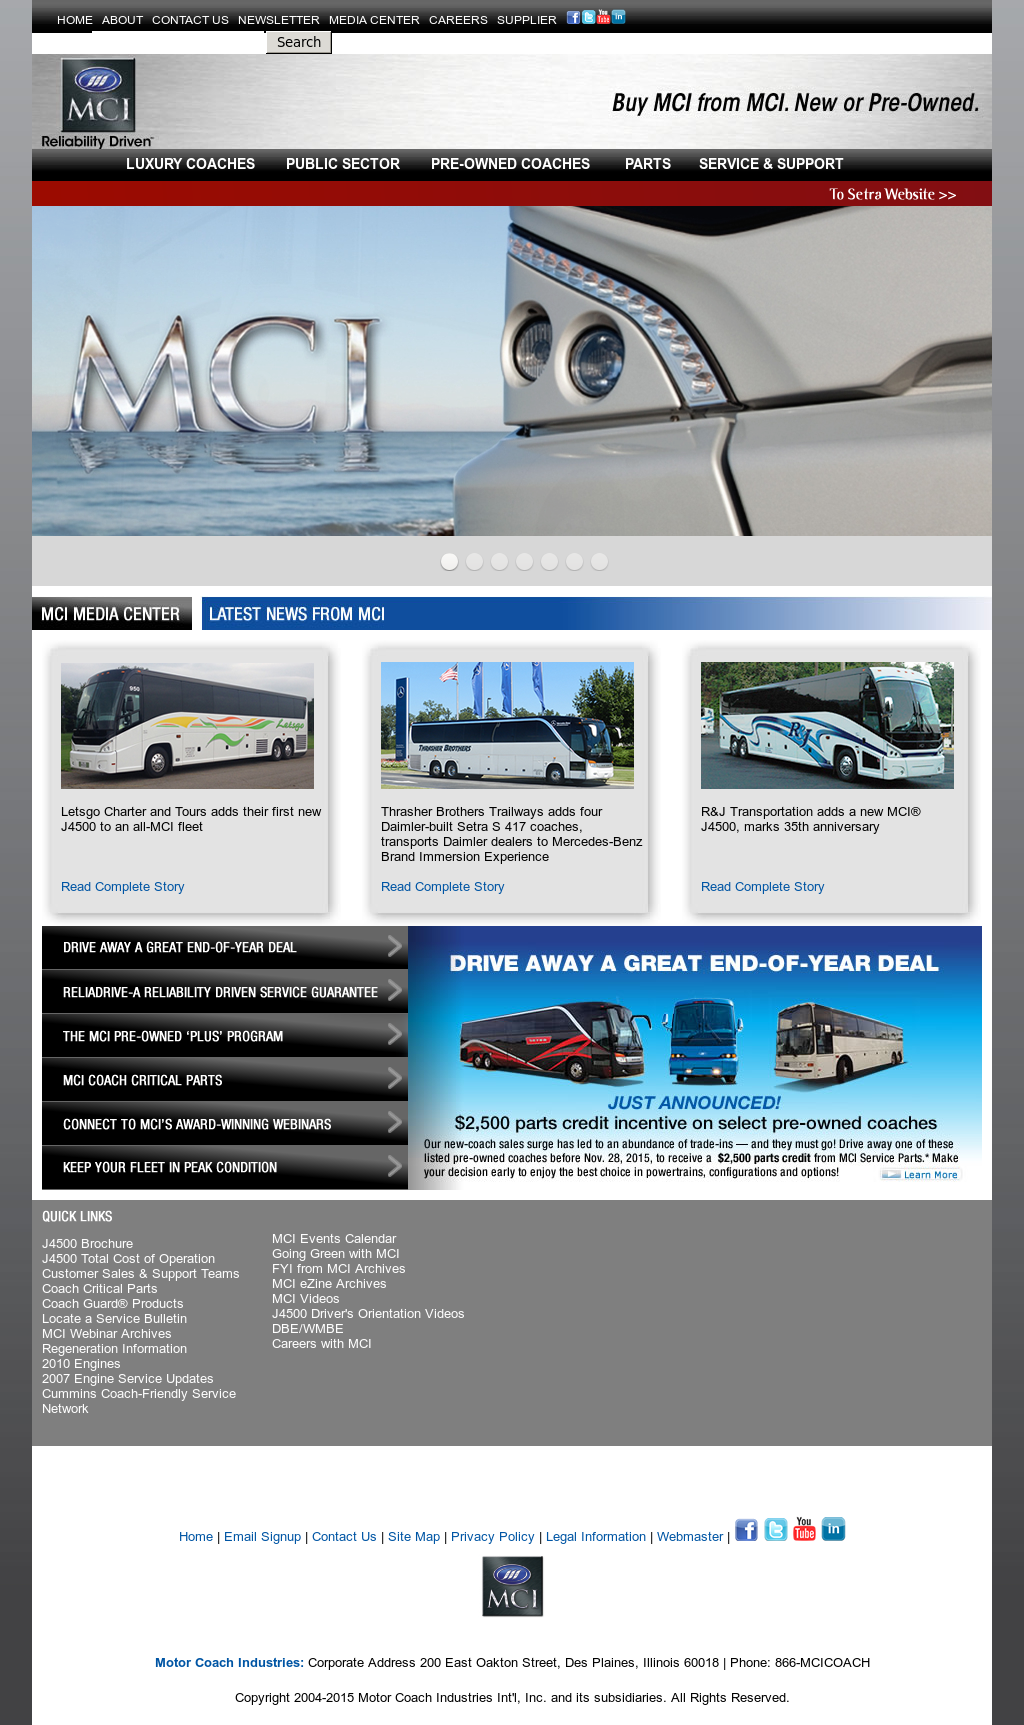 Mci Service Parts Competitors, Revenue and Employees - Owler